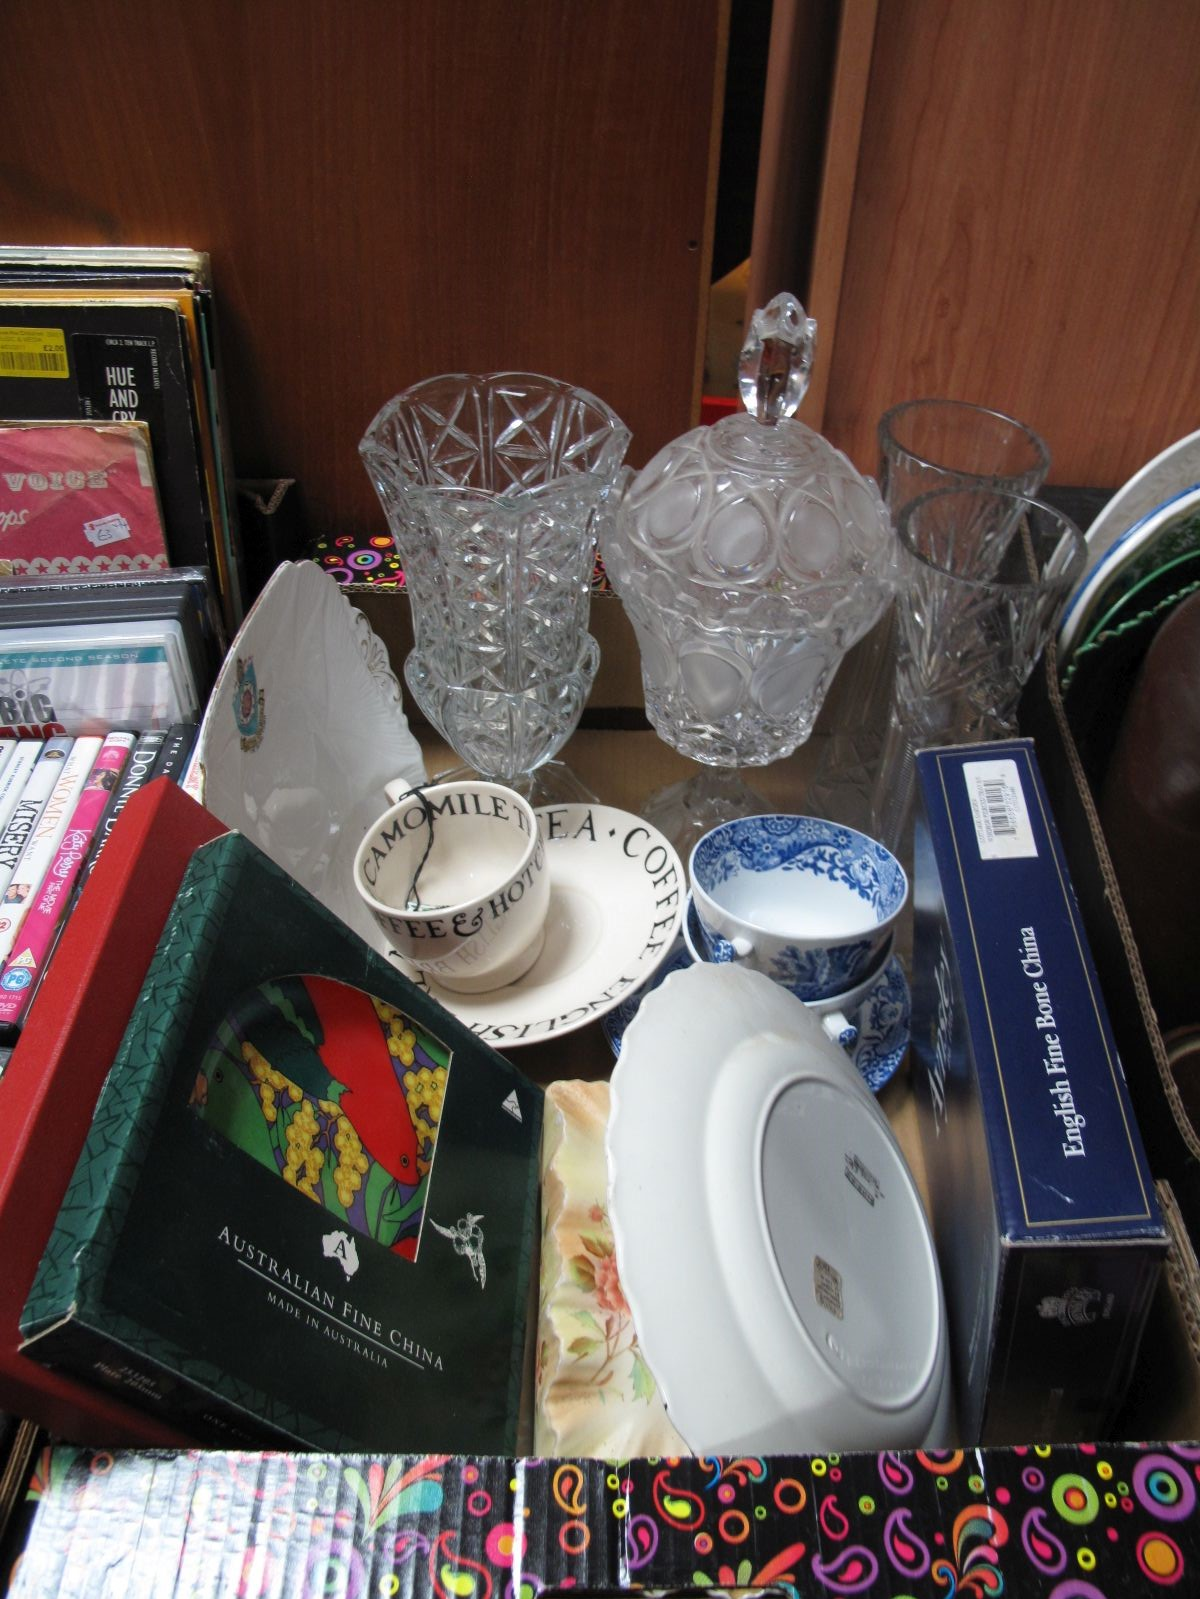 Lot 757 - Aynsley, Spode and other glassware, cheese dish, etc:- One Box